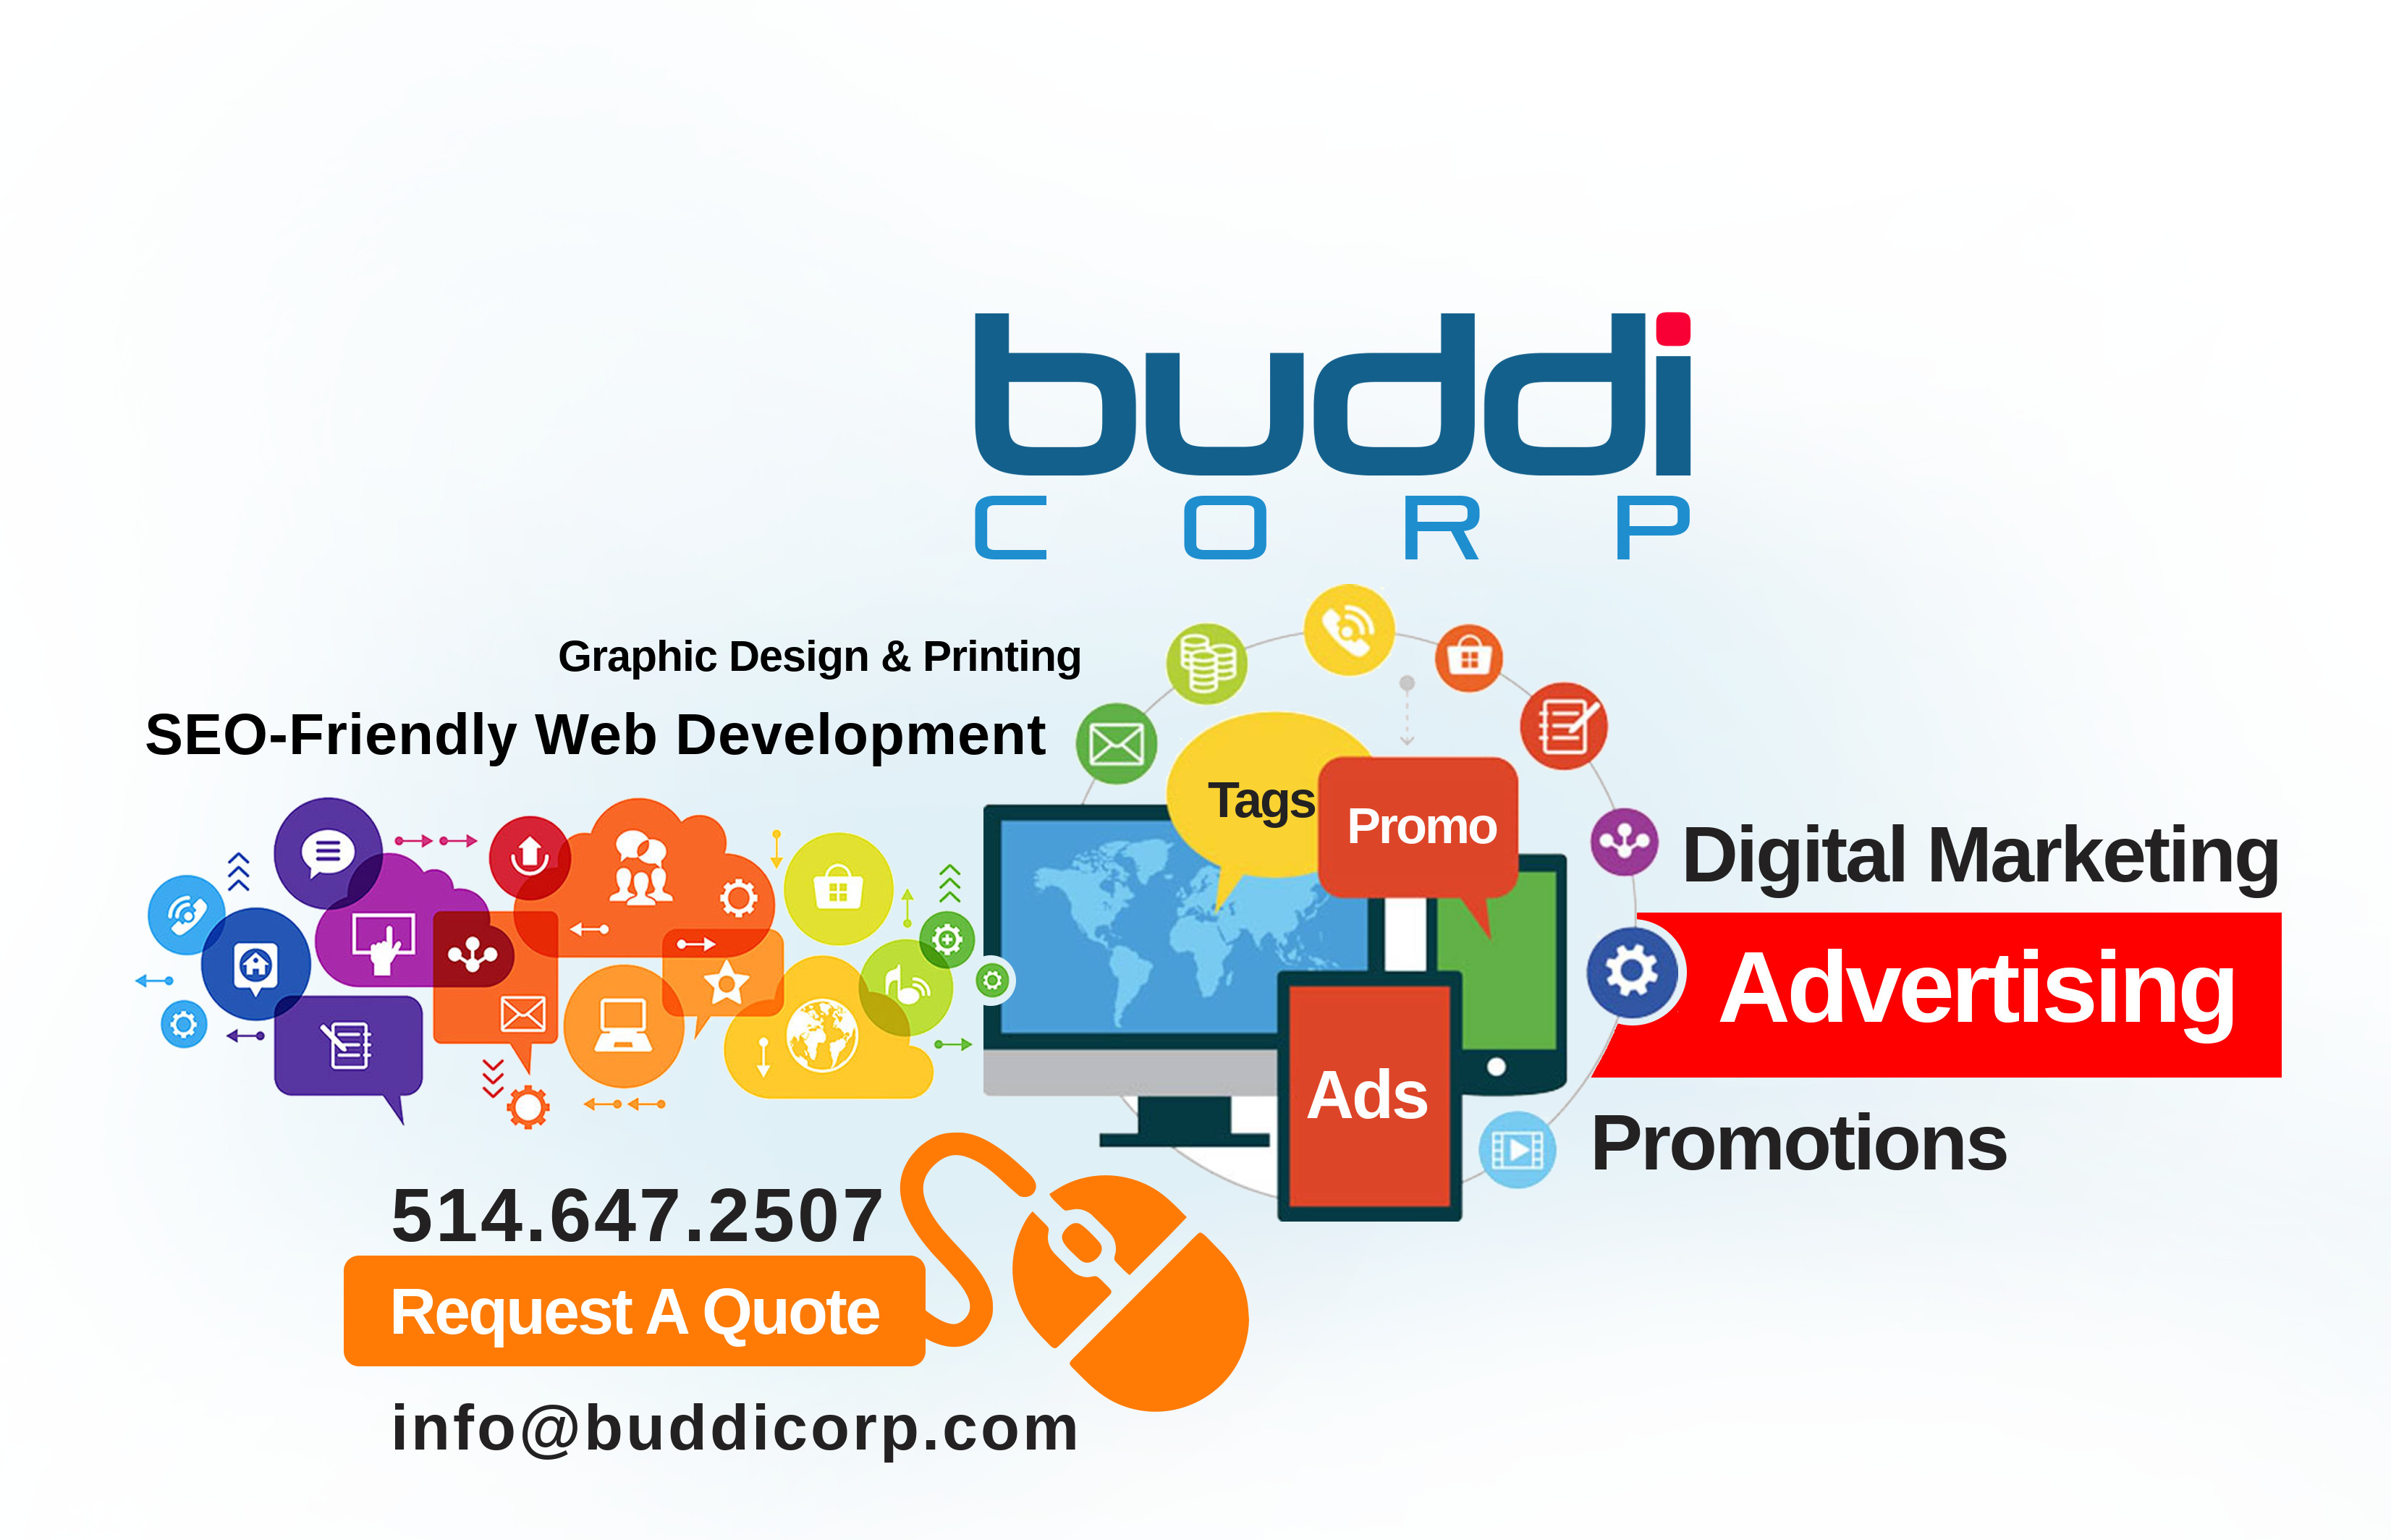 BUDDI CORP Montreal Graphic Design, Development, SEO & Digital Marketing Services